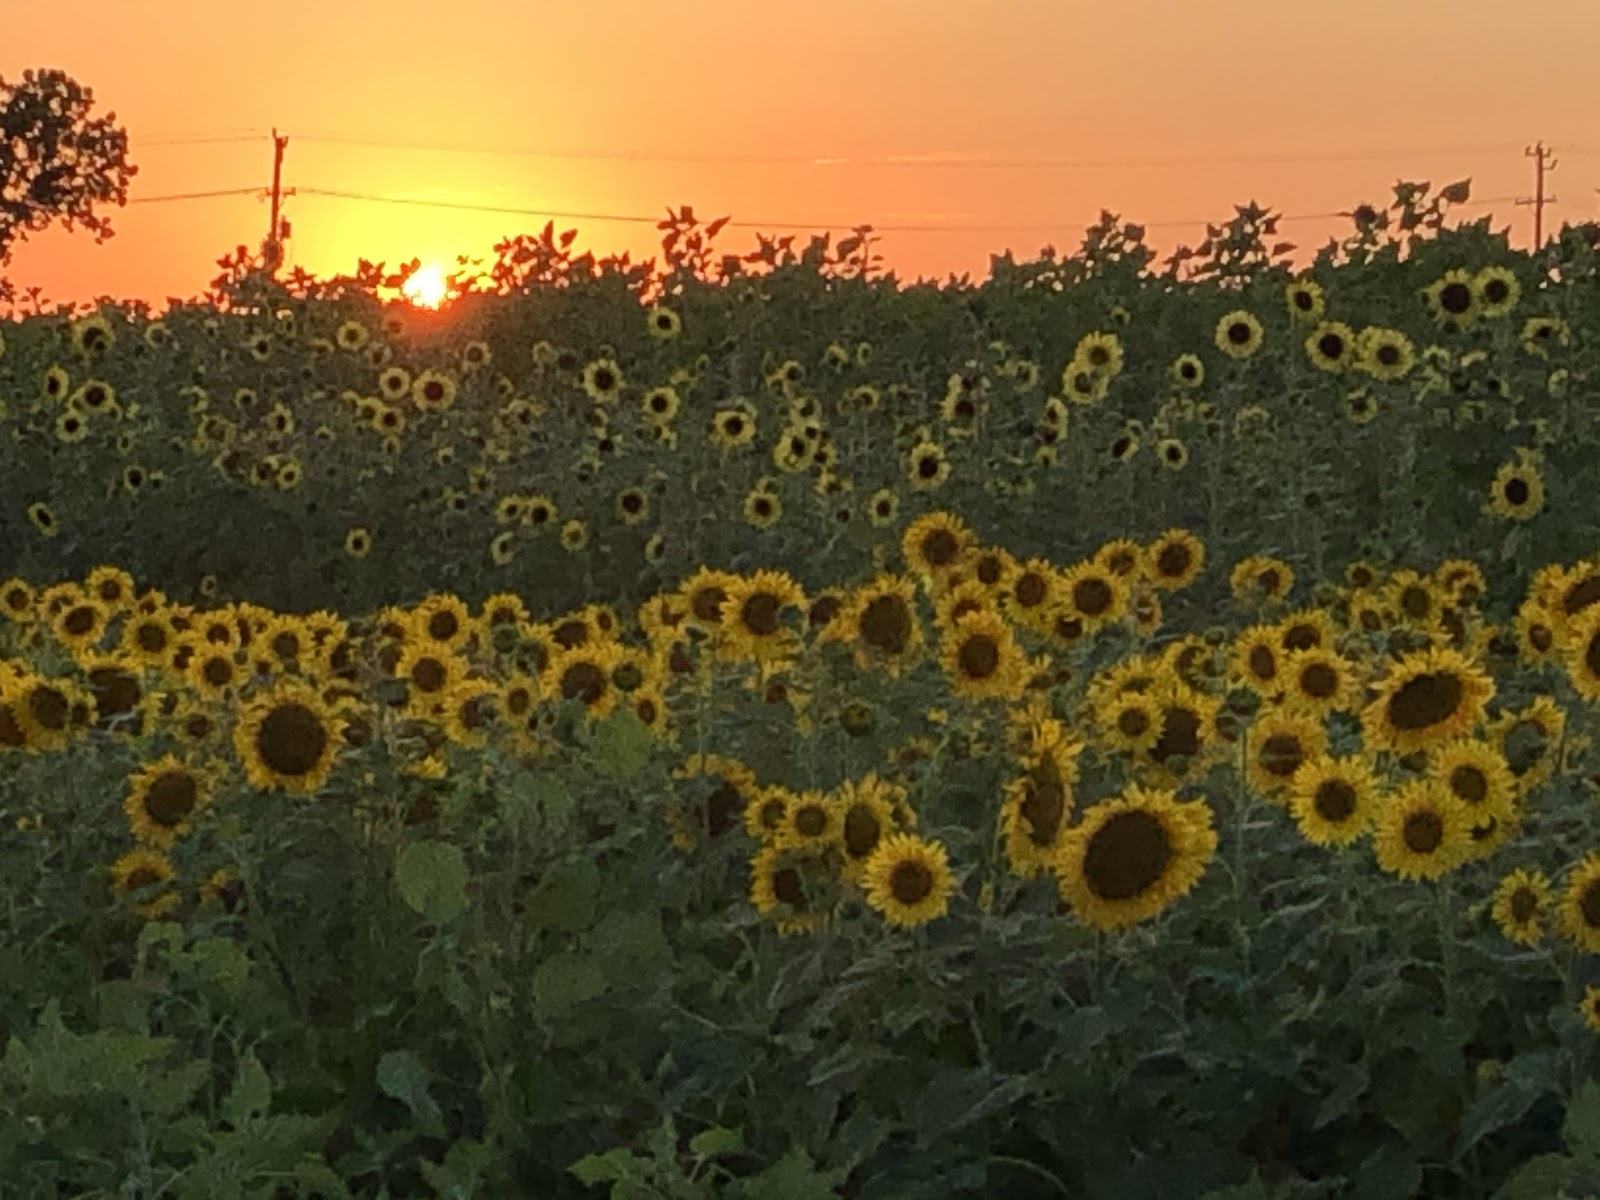 Sunset with Sunflowers. Image courtesy of Christina-Marie Sears